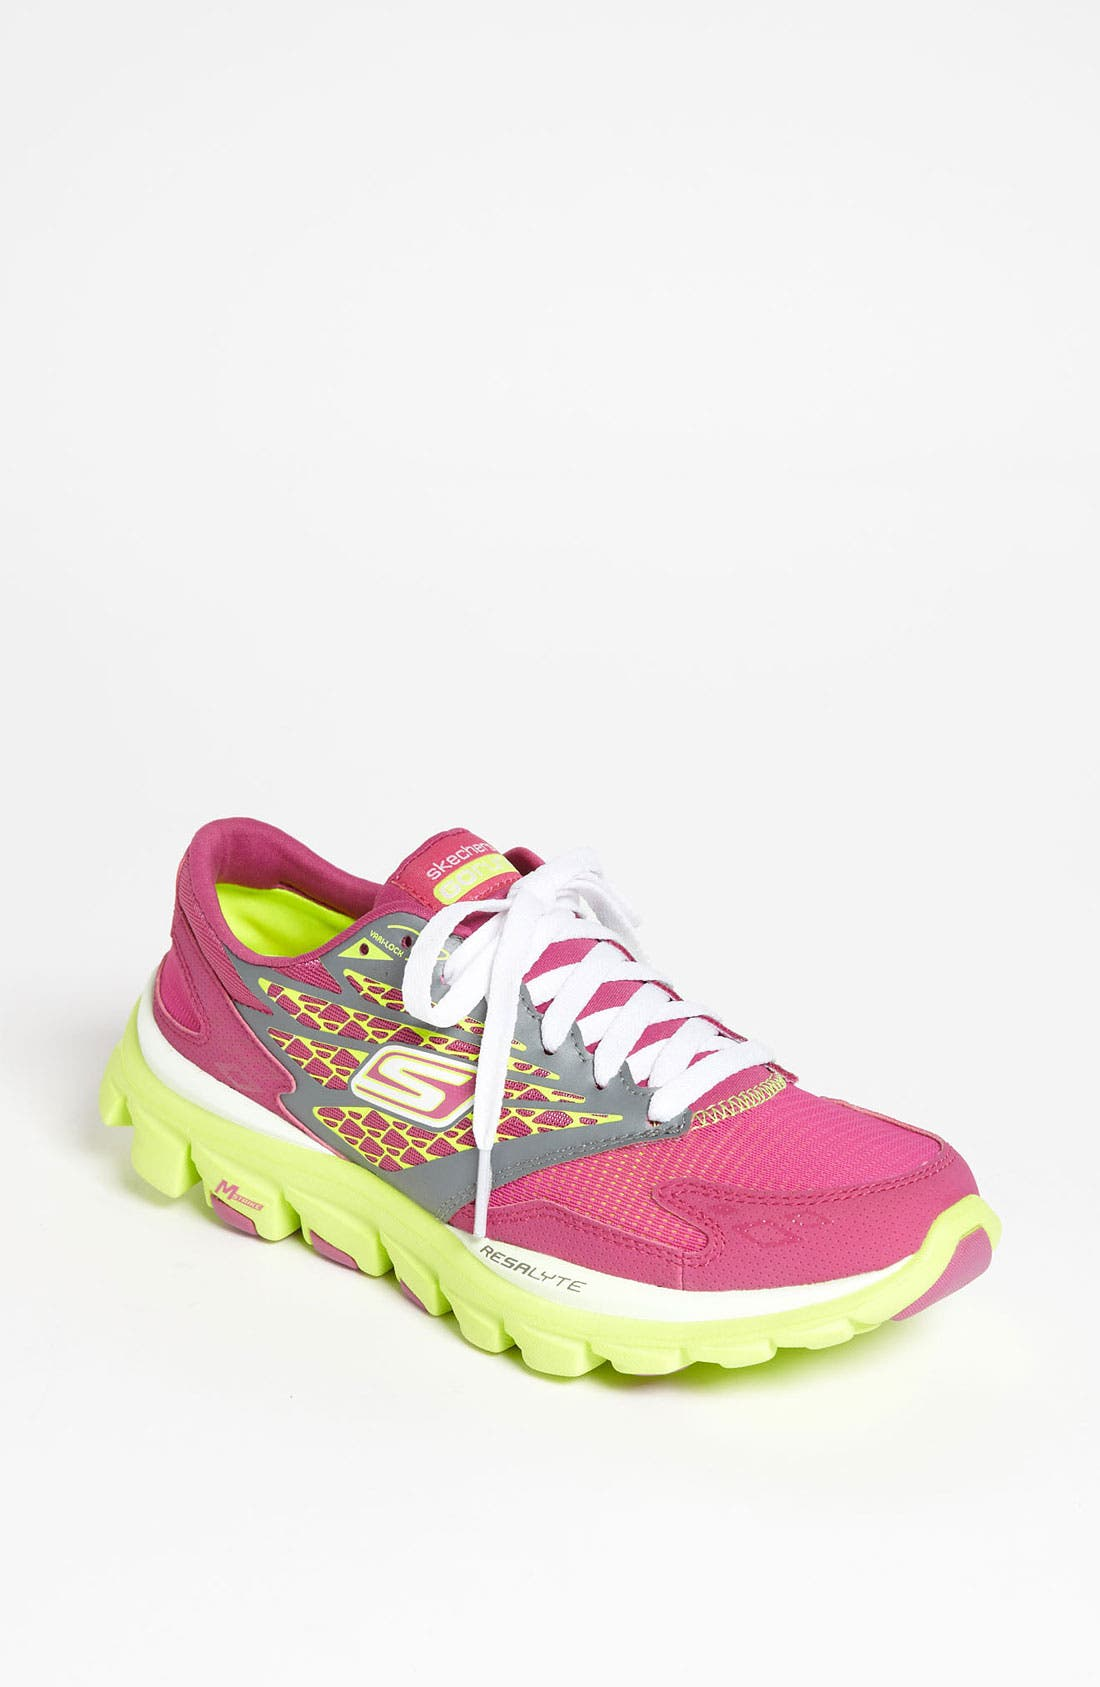 Main Image - SKECHERS 'GOrun Ride' Running Shoe (Women)